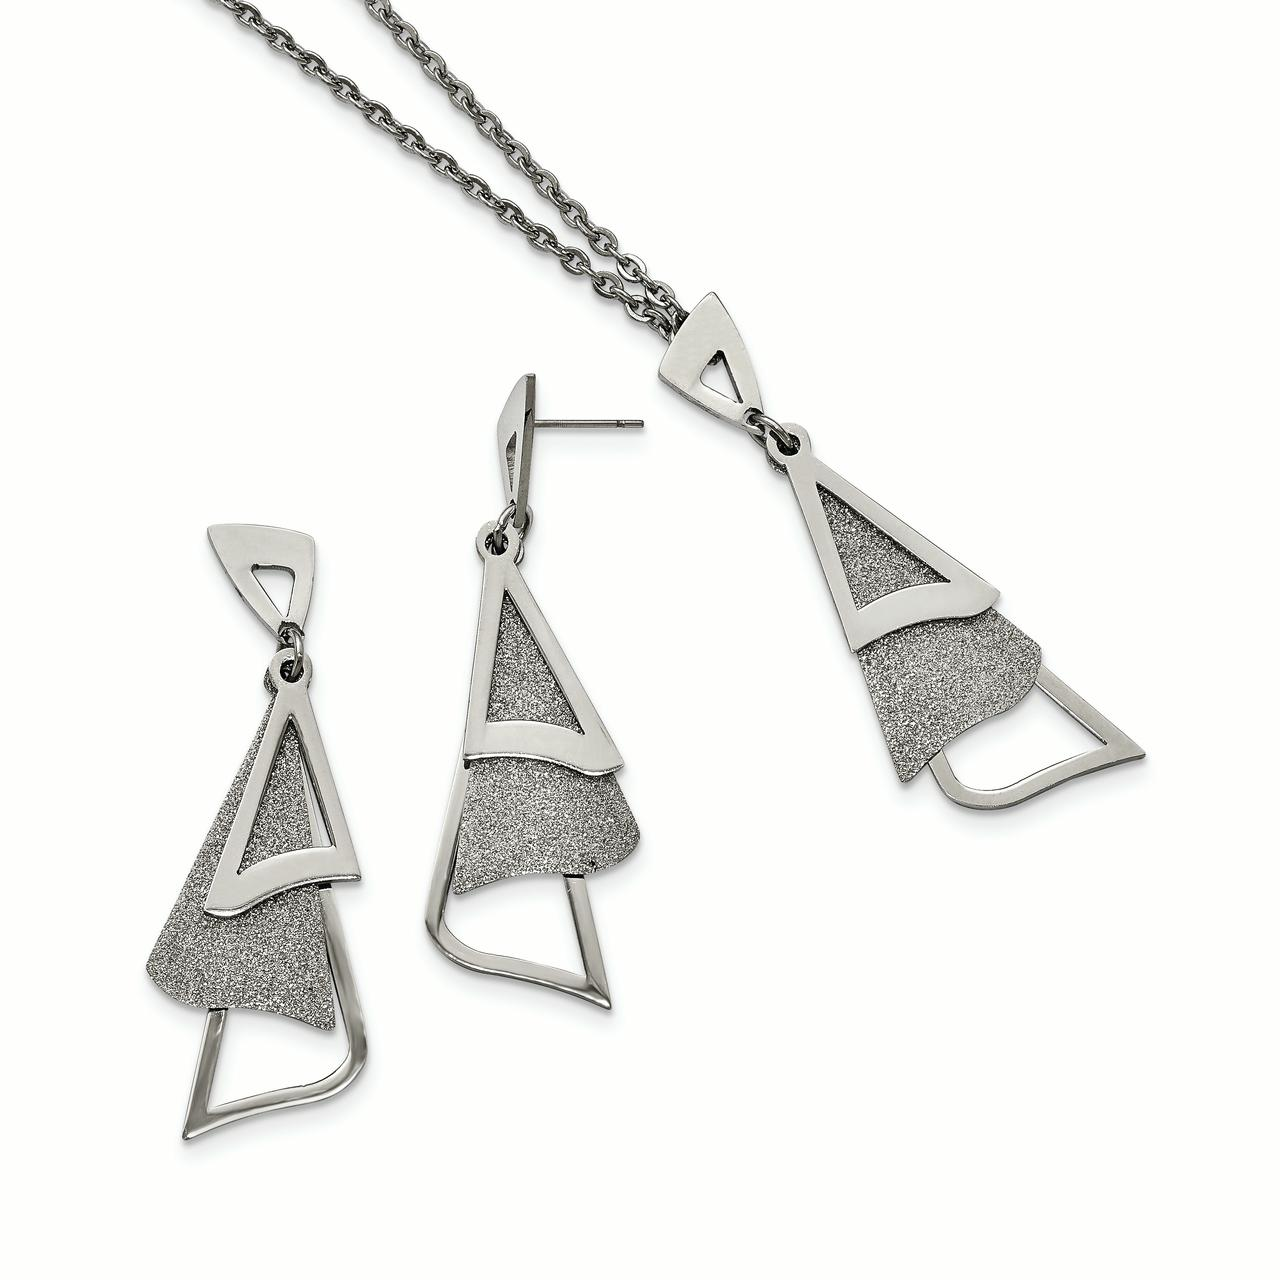 Stainless Steel Polished Laser Cut Necklace and Earring Set